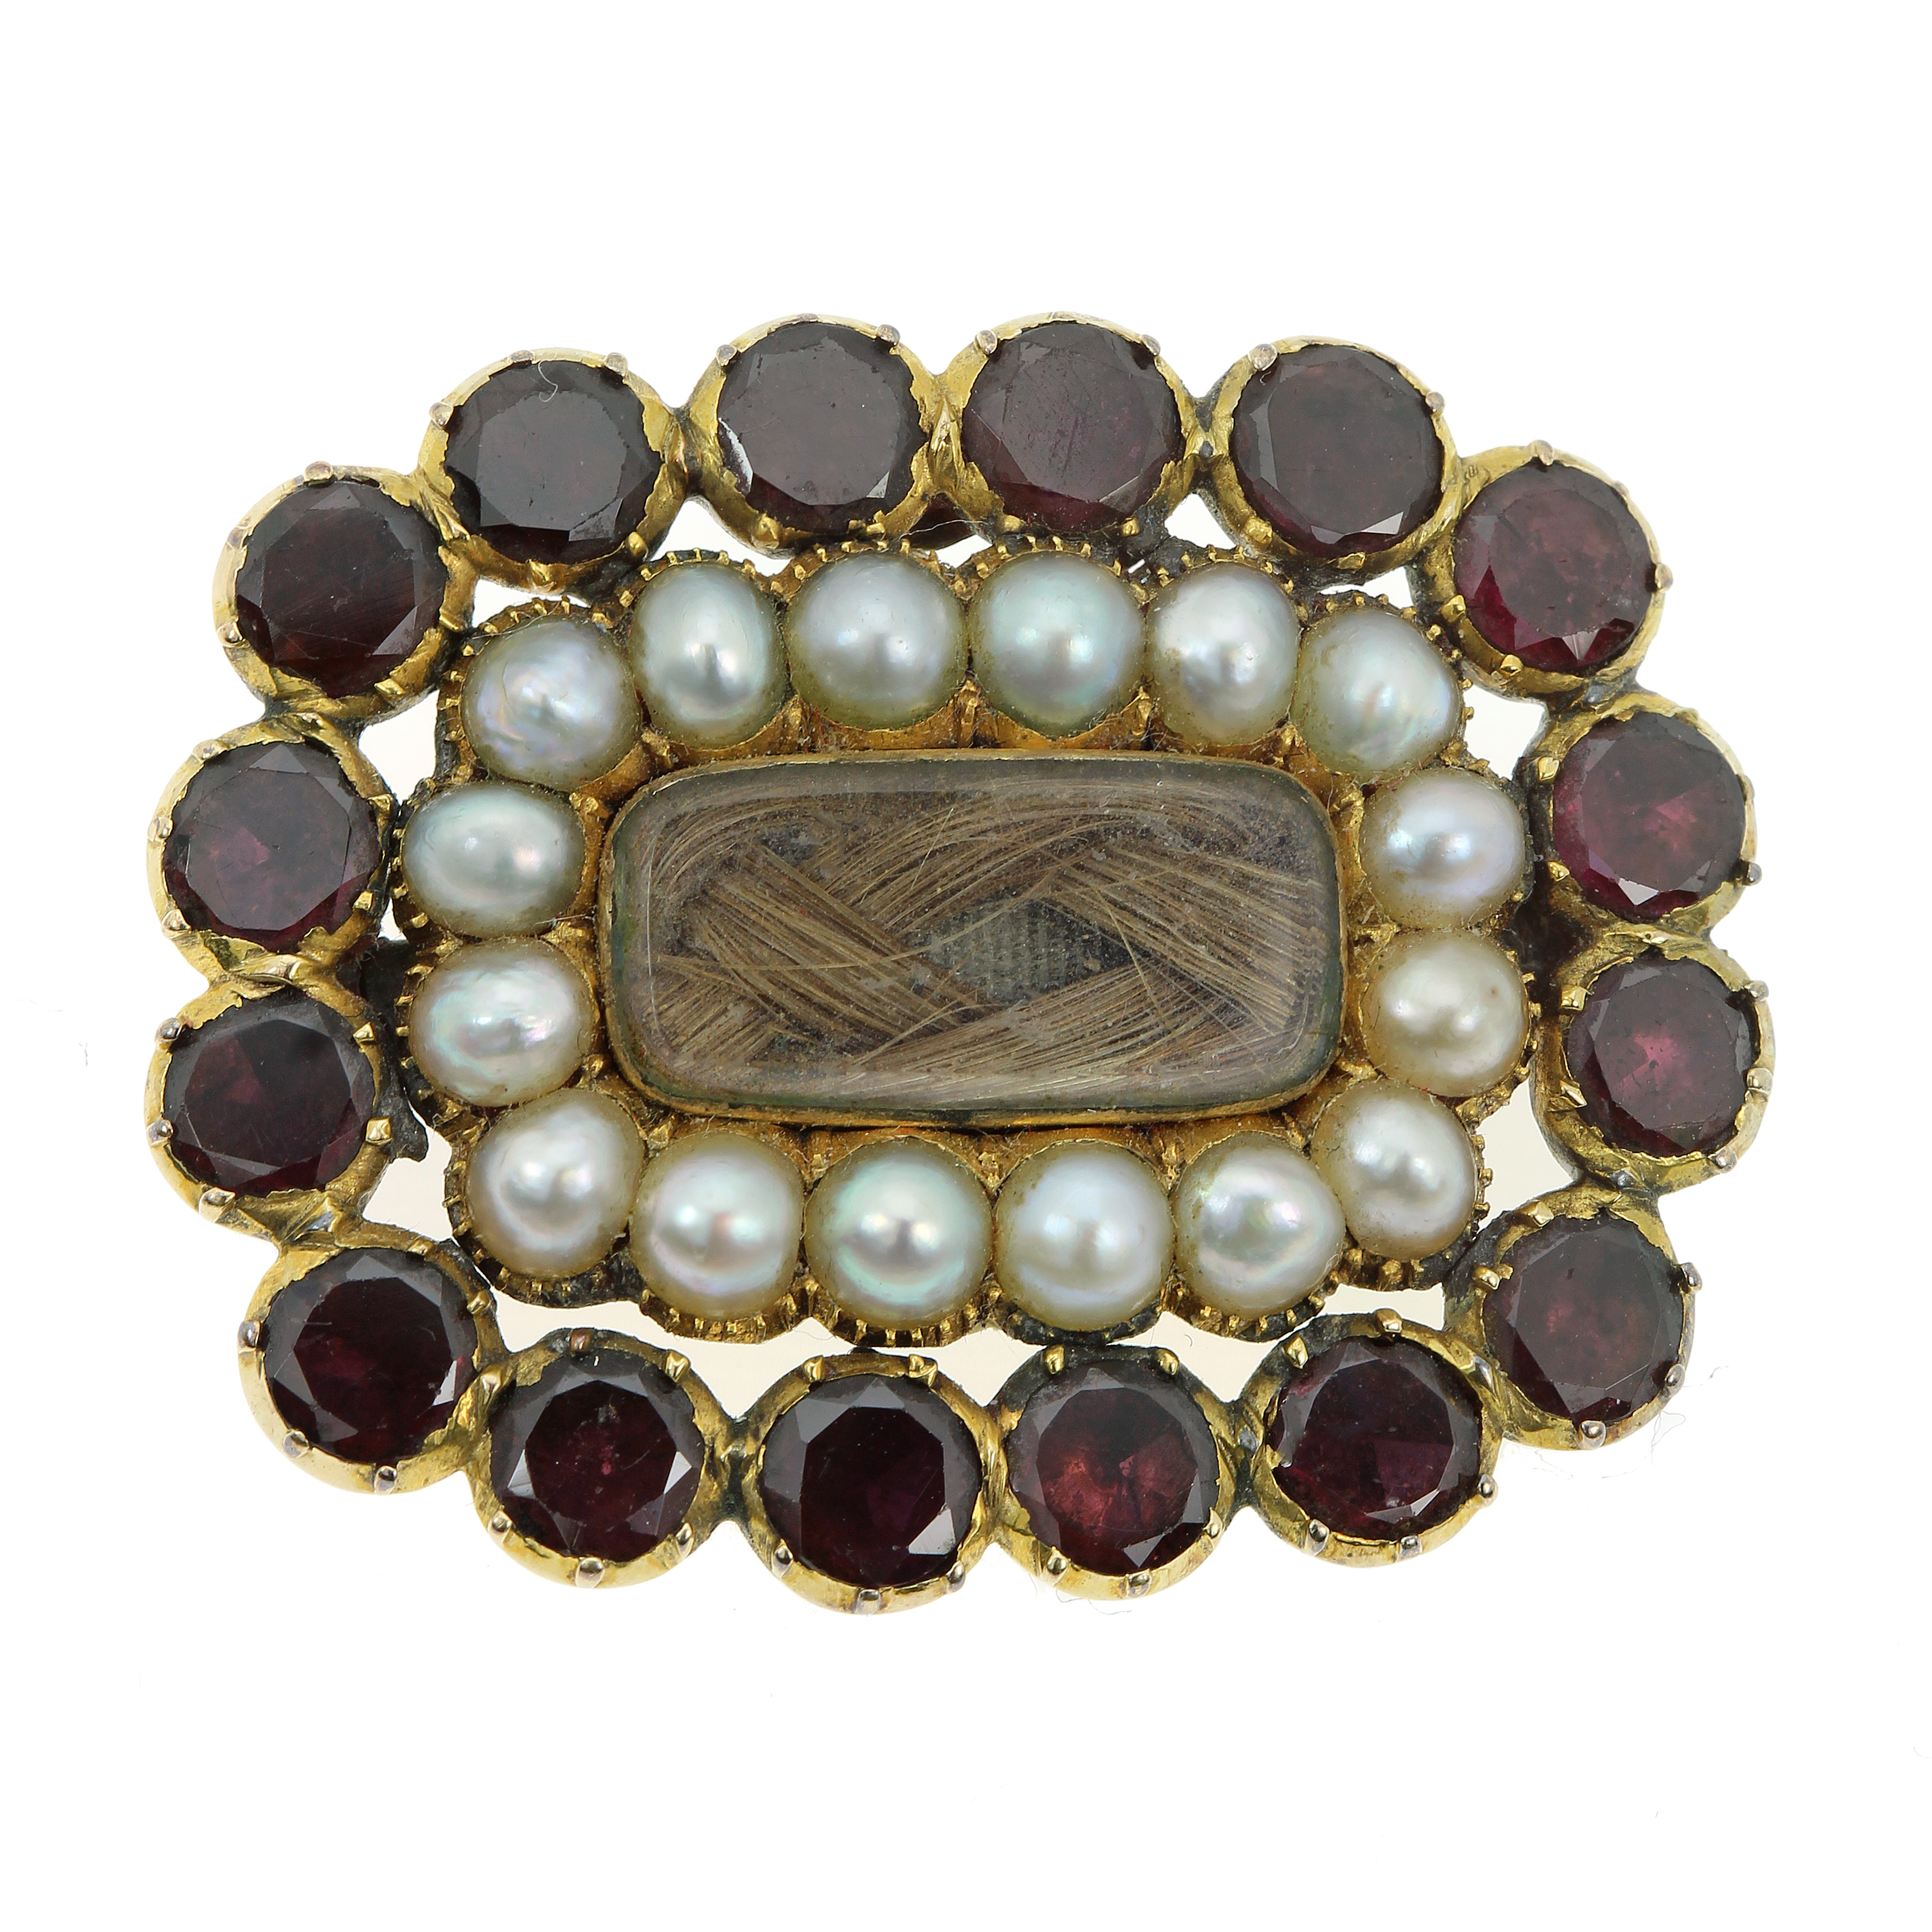 Los 34 - AN ANTIQUE HAIRWORK, PEARL AND GARNET MOURNING BROOCH, 19TH CENTURY in yellow gold, the central